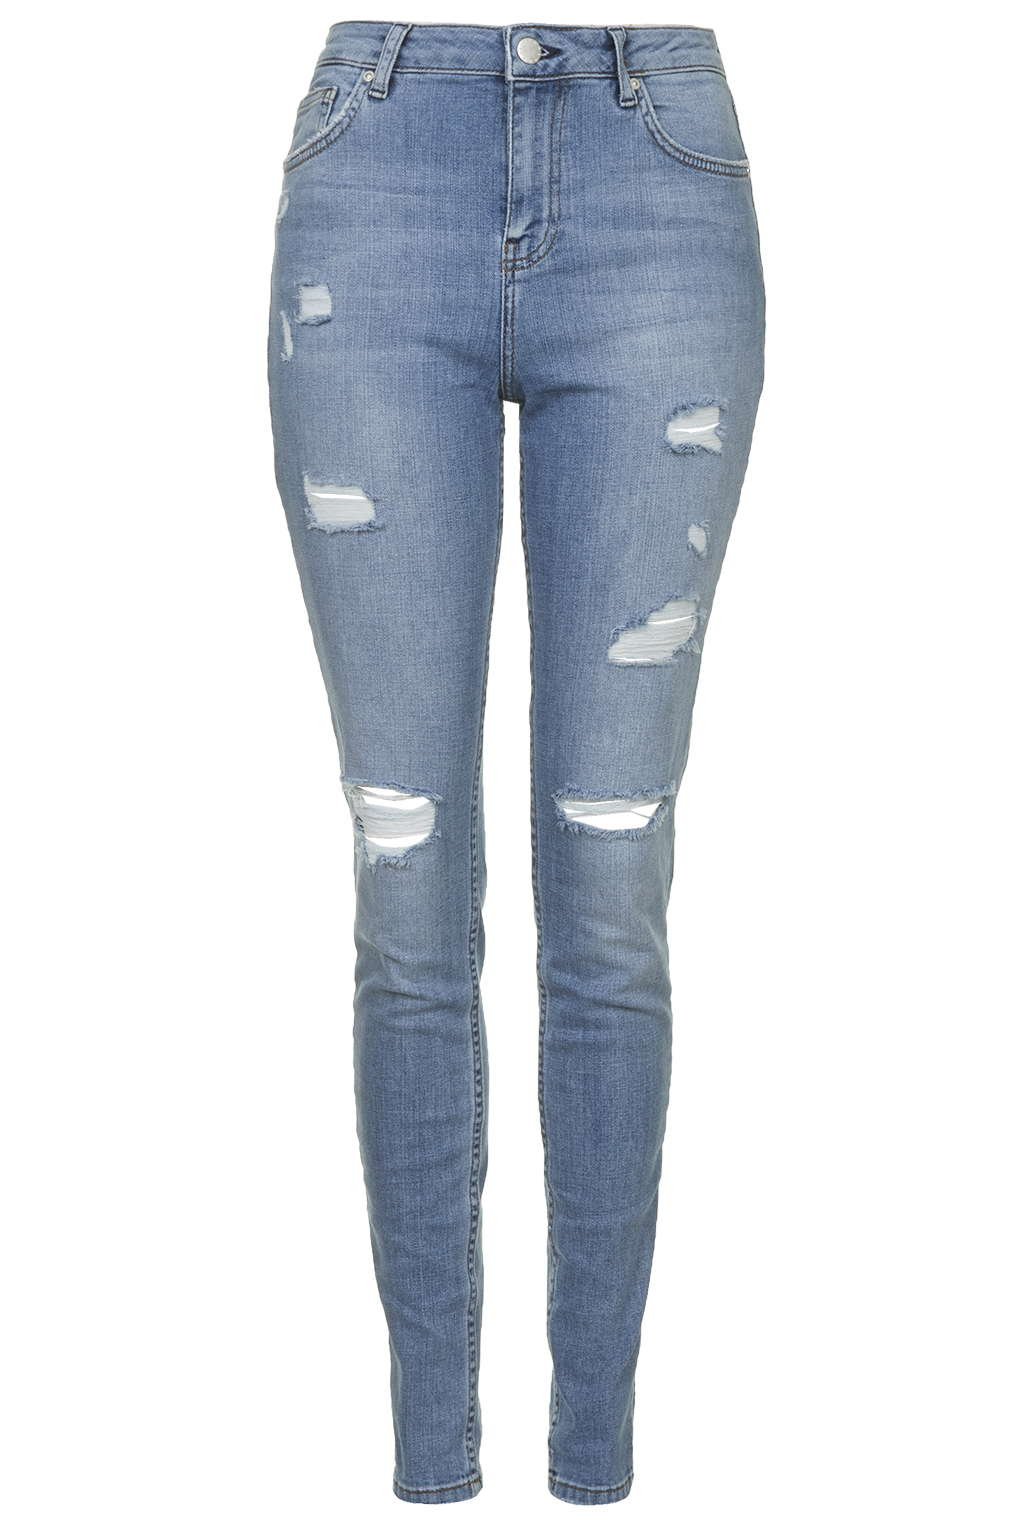 MOTO Bleach Authentic Ripped Skinny Jeans